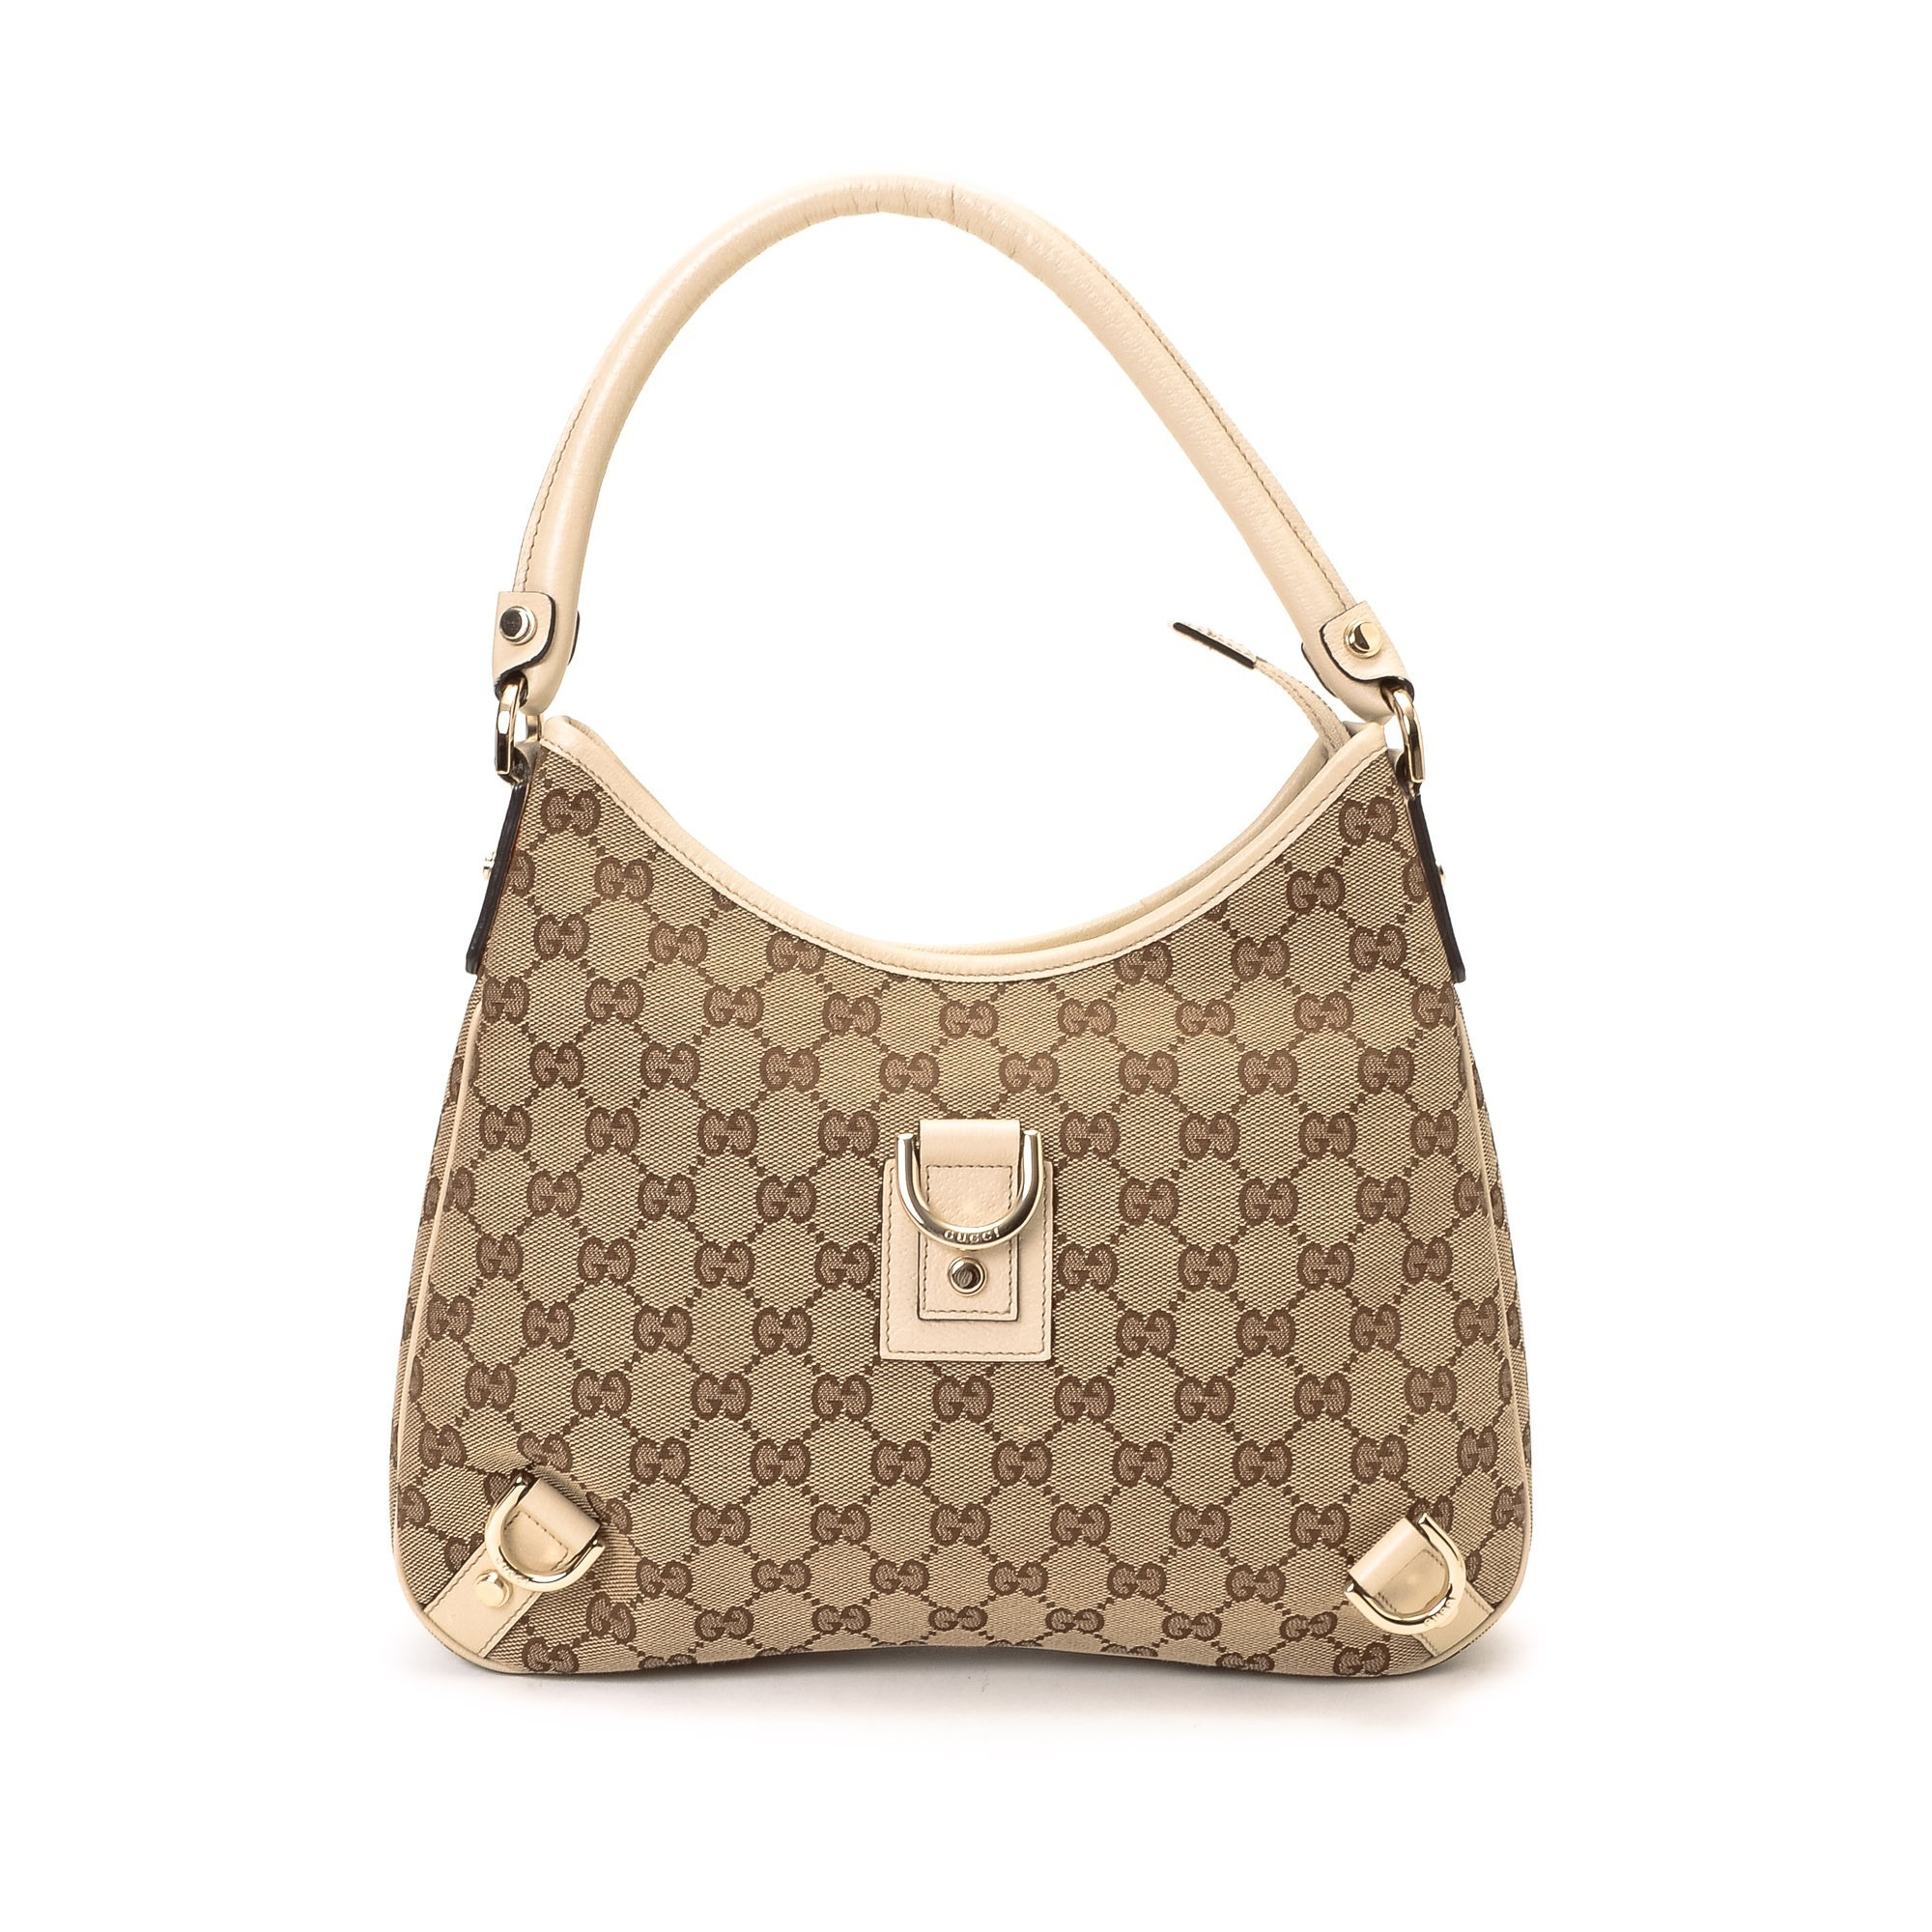 Gucci Beige Shoulder Bag 81